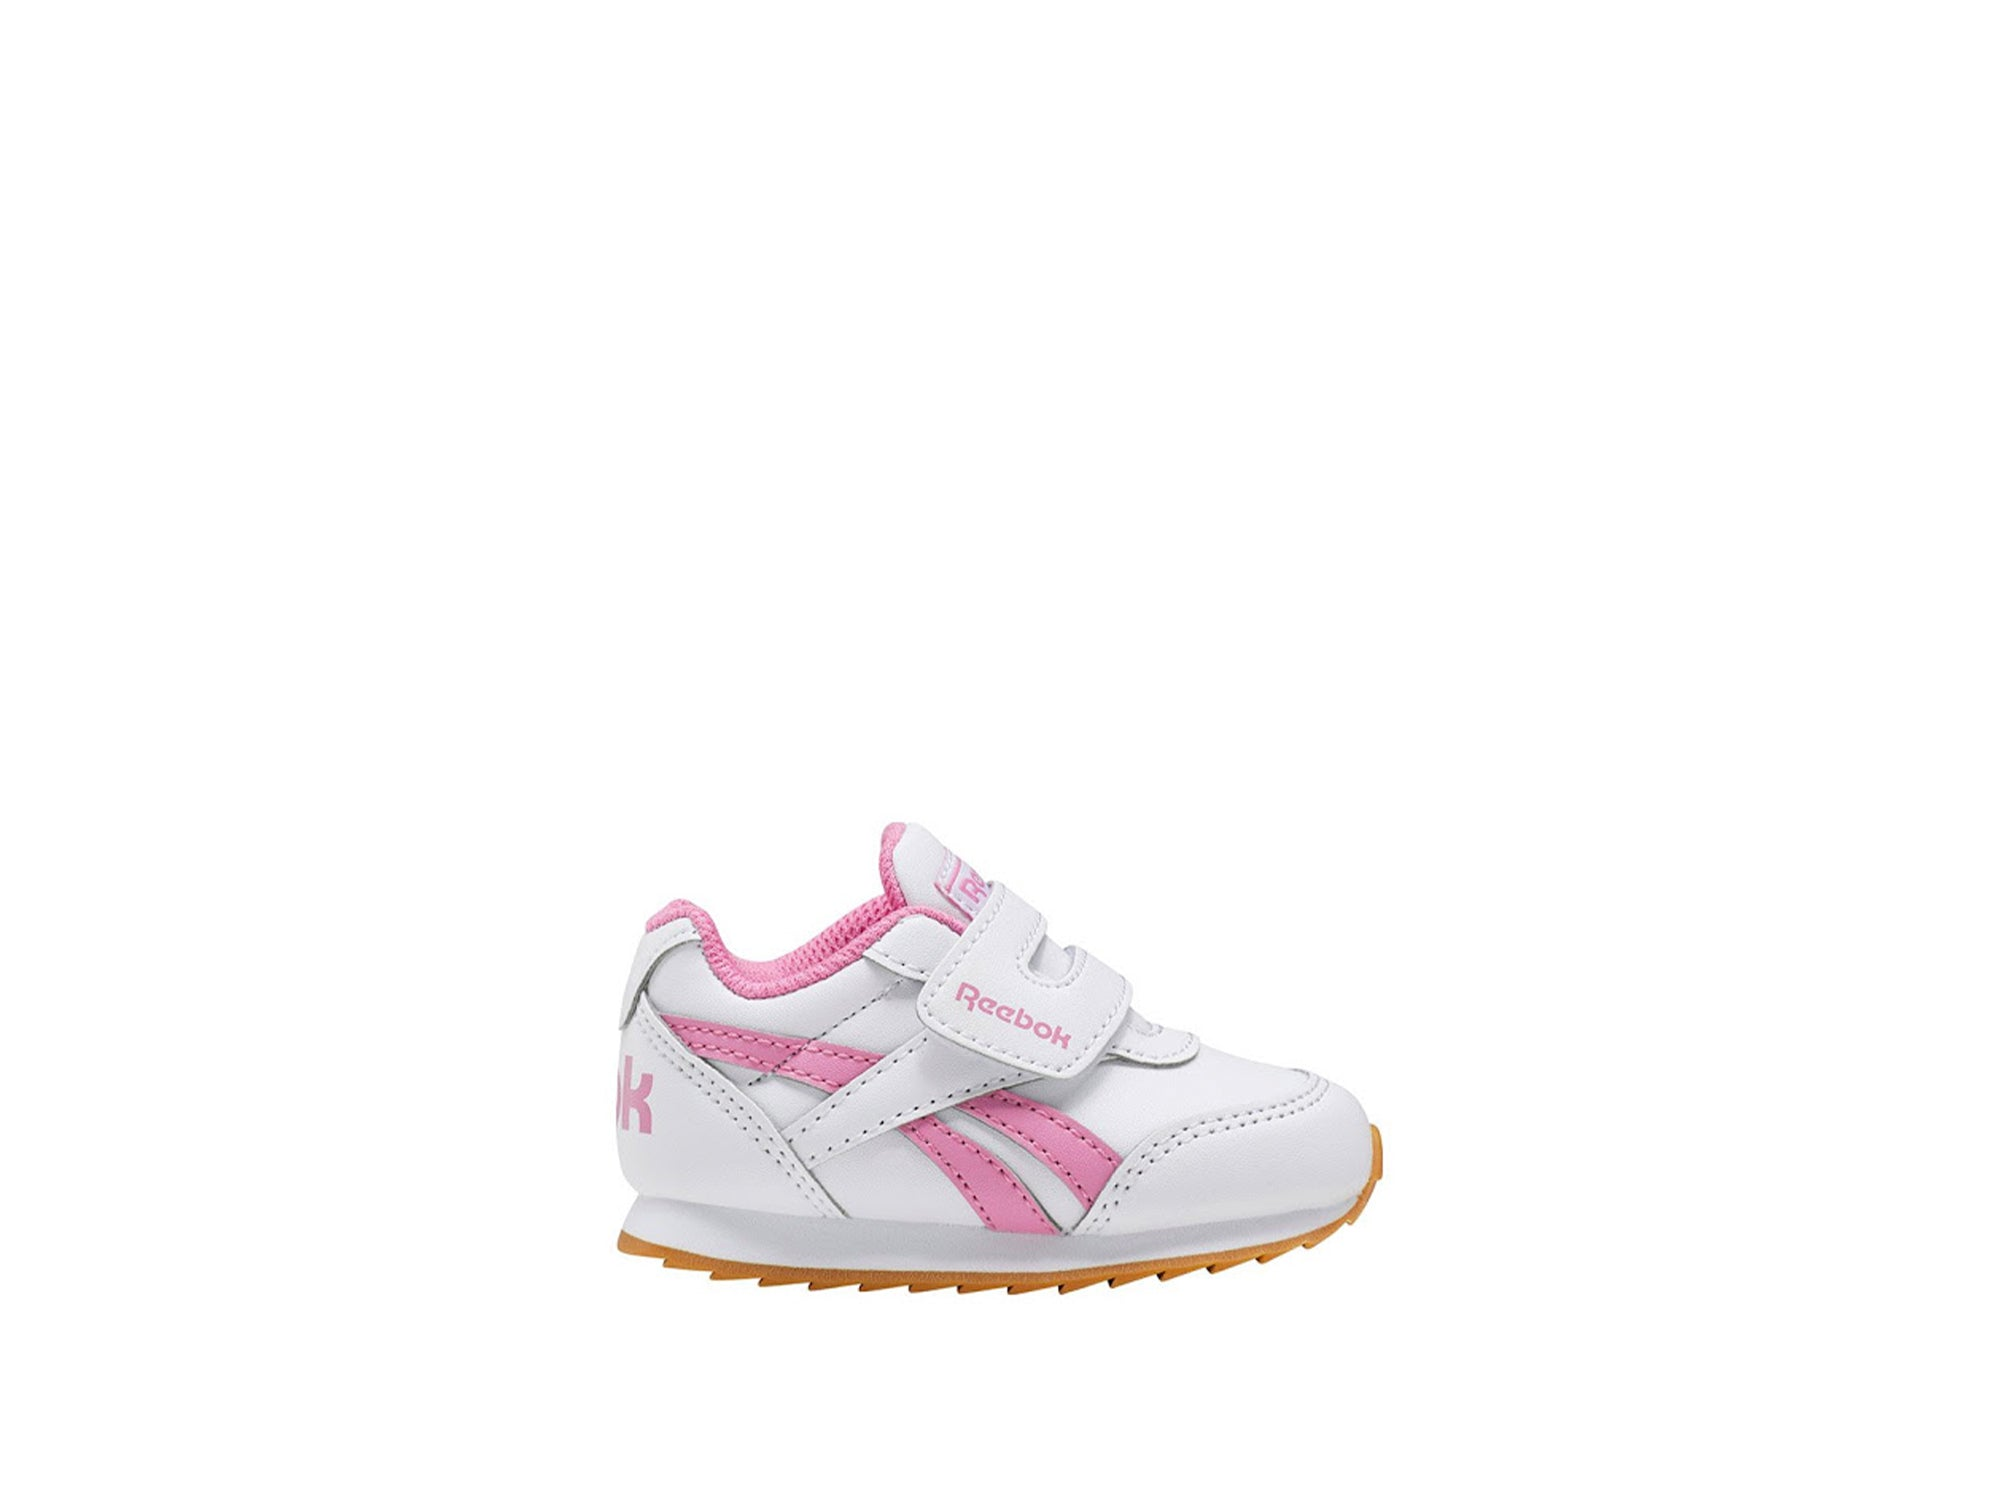 Zapatilla Reebok Reebok Royal Cljog 2 Junior Blanco